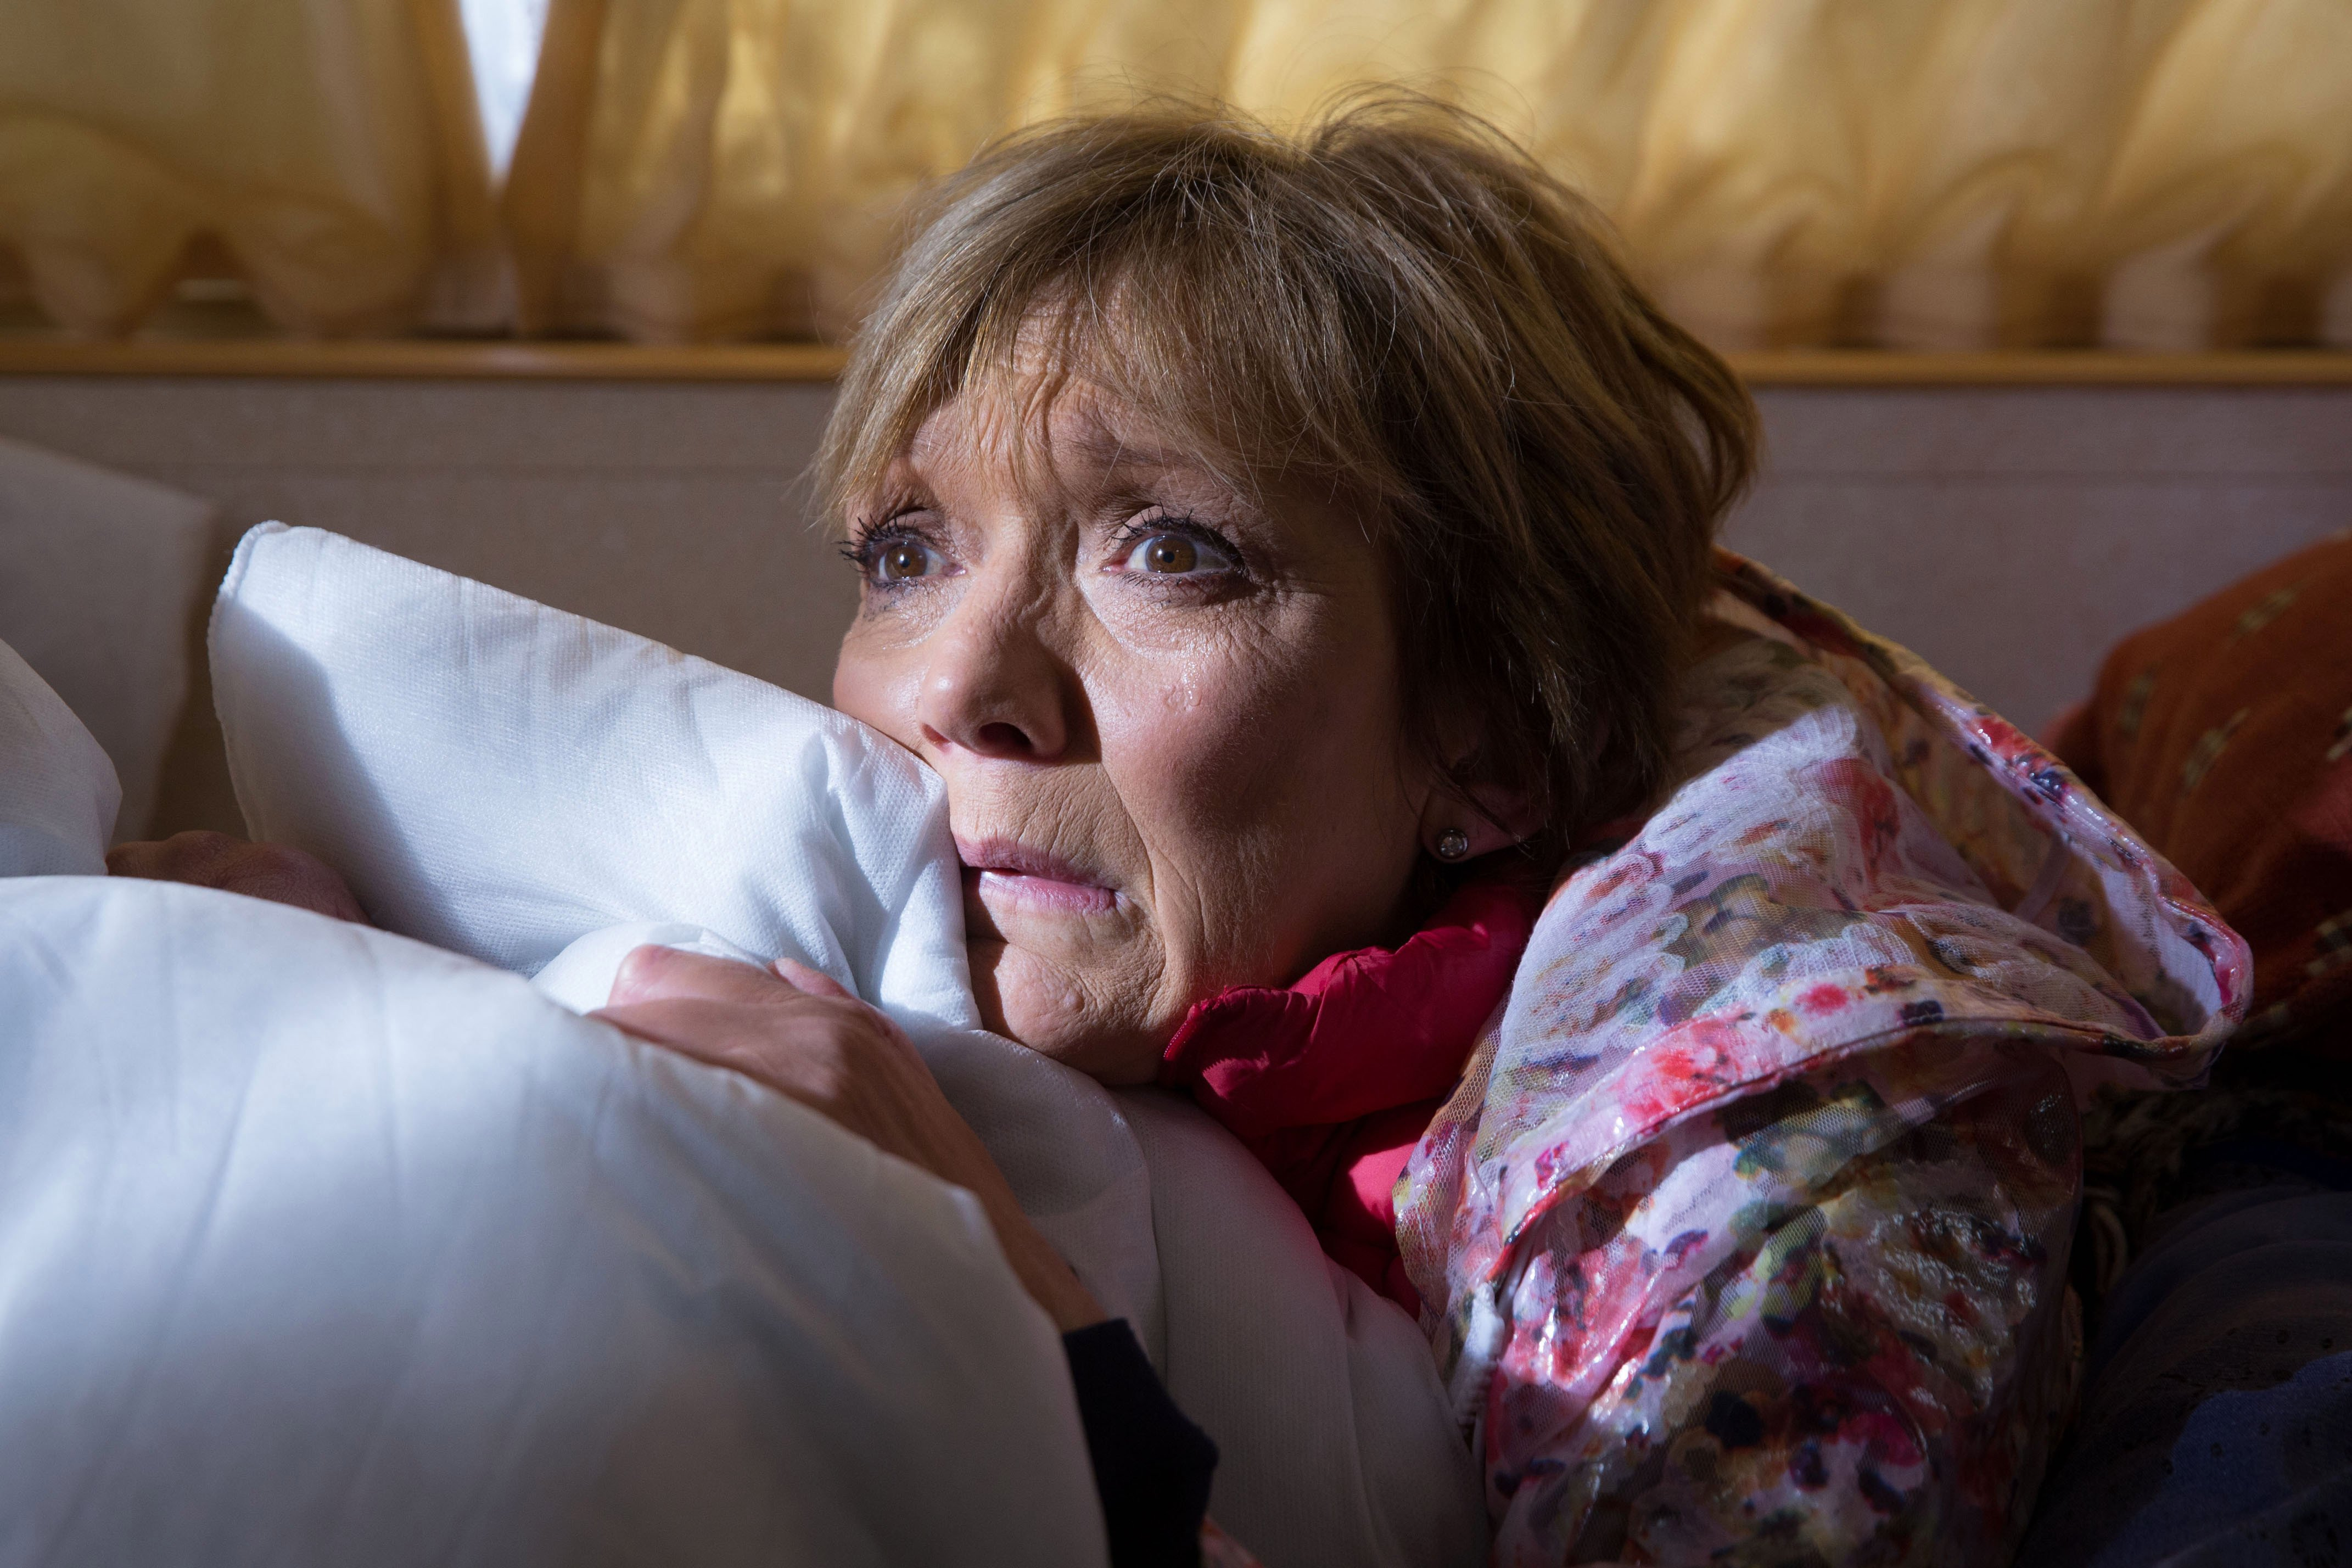 Is Jean Slater going to die in EastEnders and what stage cancer does she have?